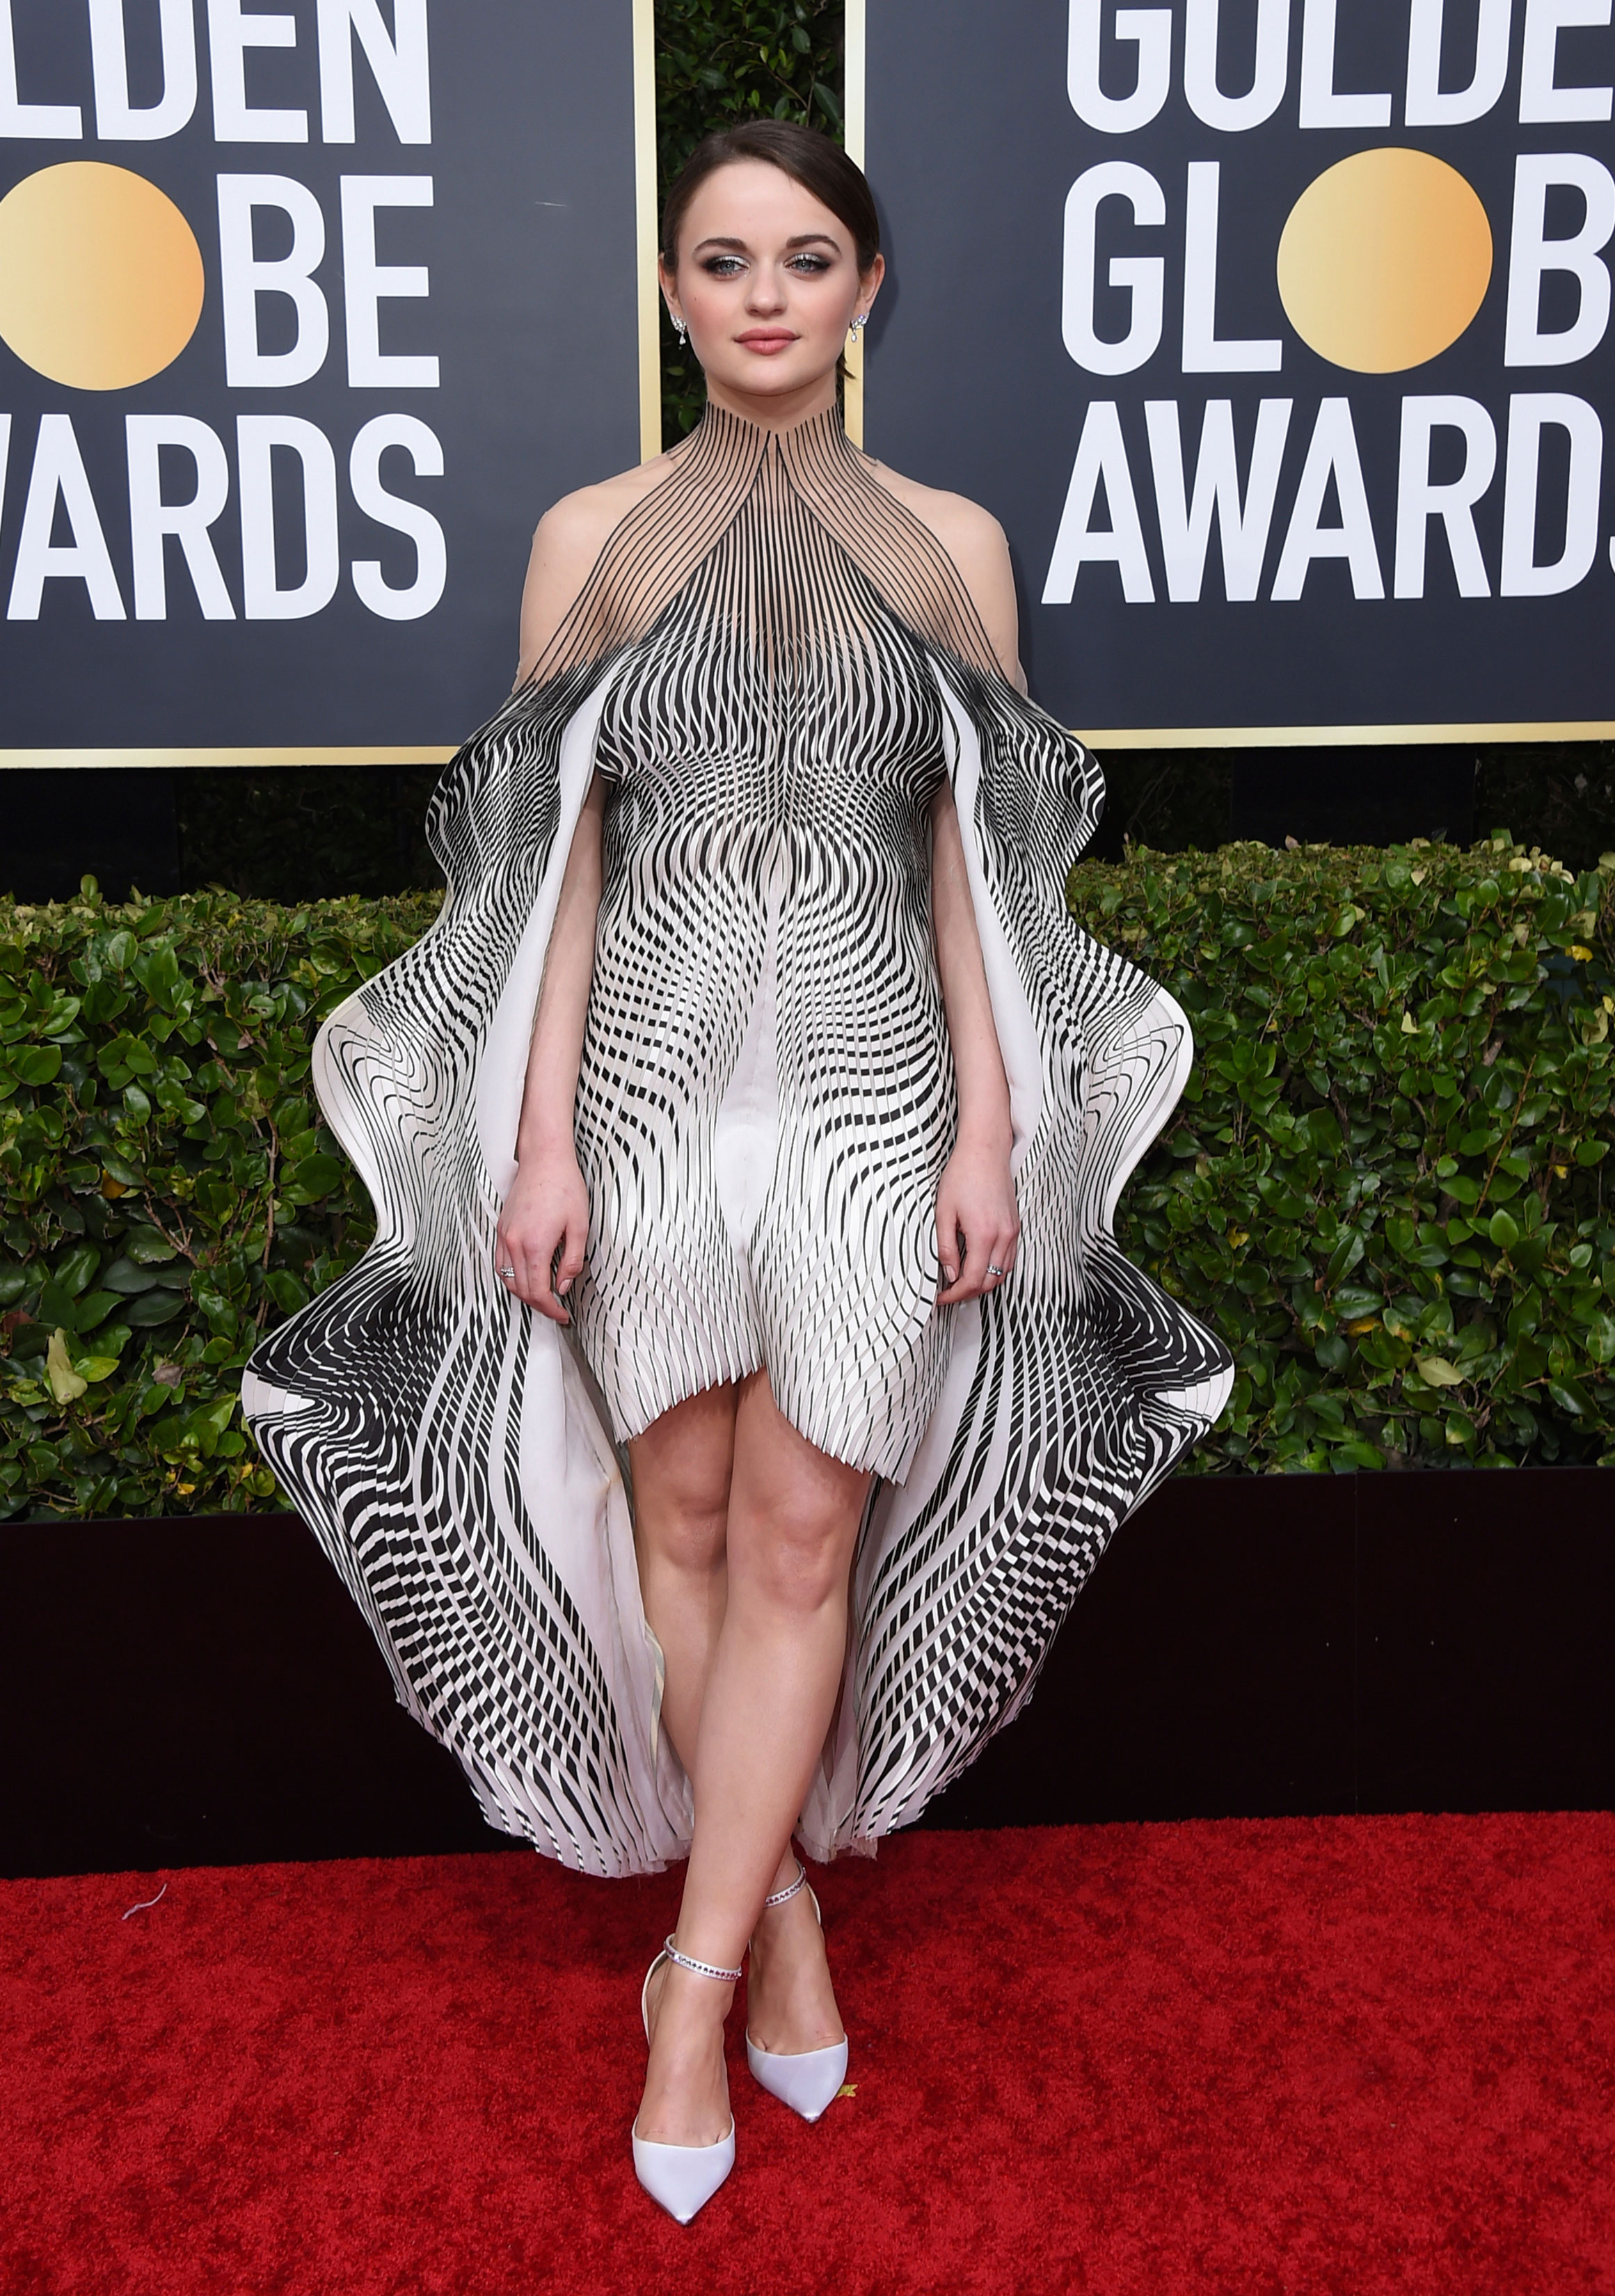 Talk about trying something fun? Joey King showed how to work the classy black-and-white combo but with a dramatic touch. The Act actress looked resplendent as she earned her stripes in a wavy textured-sleeve outfit by Iris van Herpen.